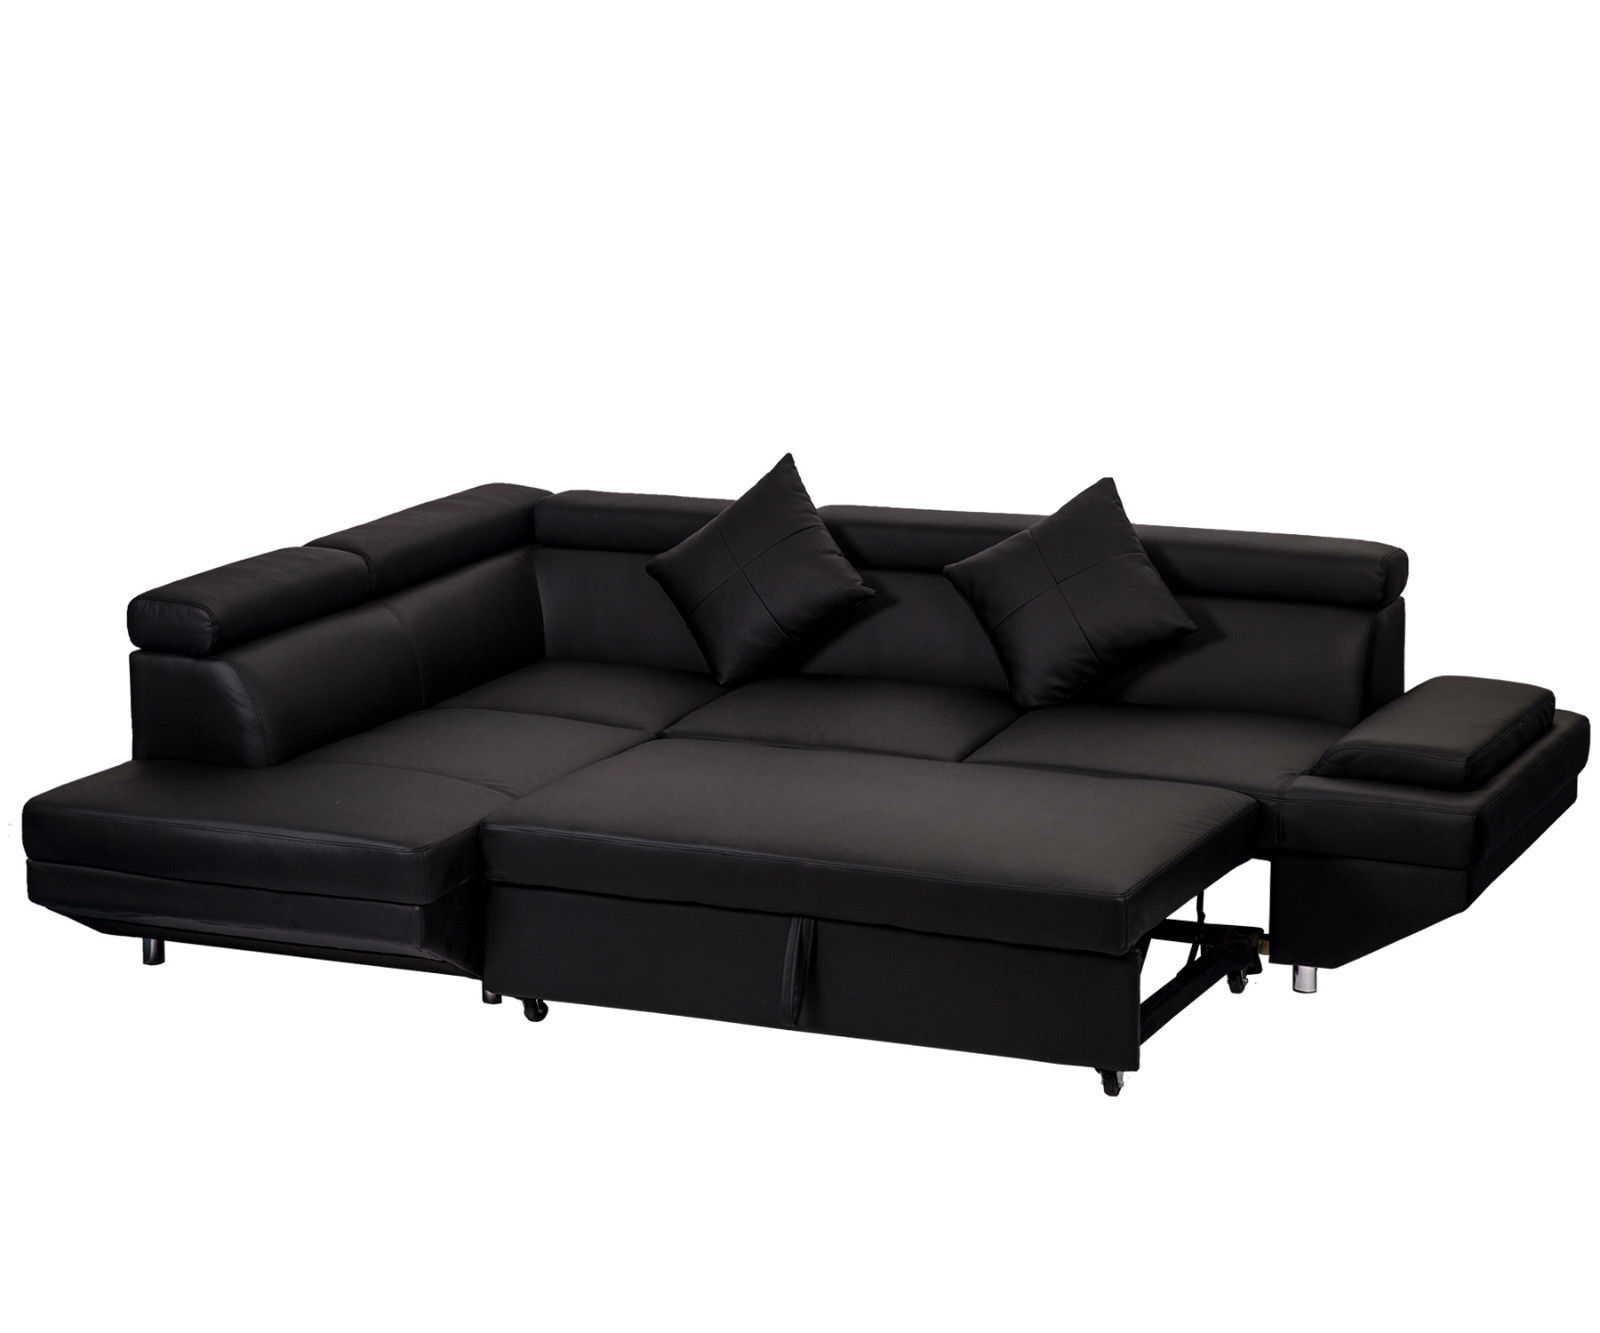 Sofa L Images Contemporary Sectional Modern Sofa Bed Black With Functional Armrest Back L